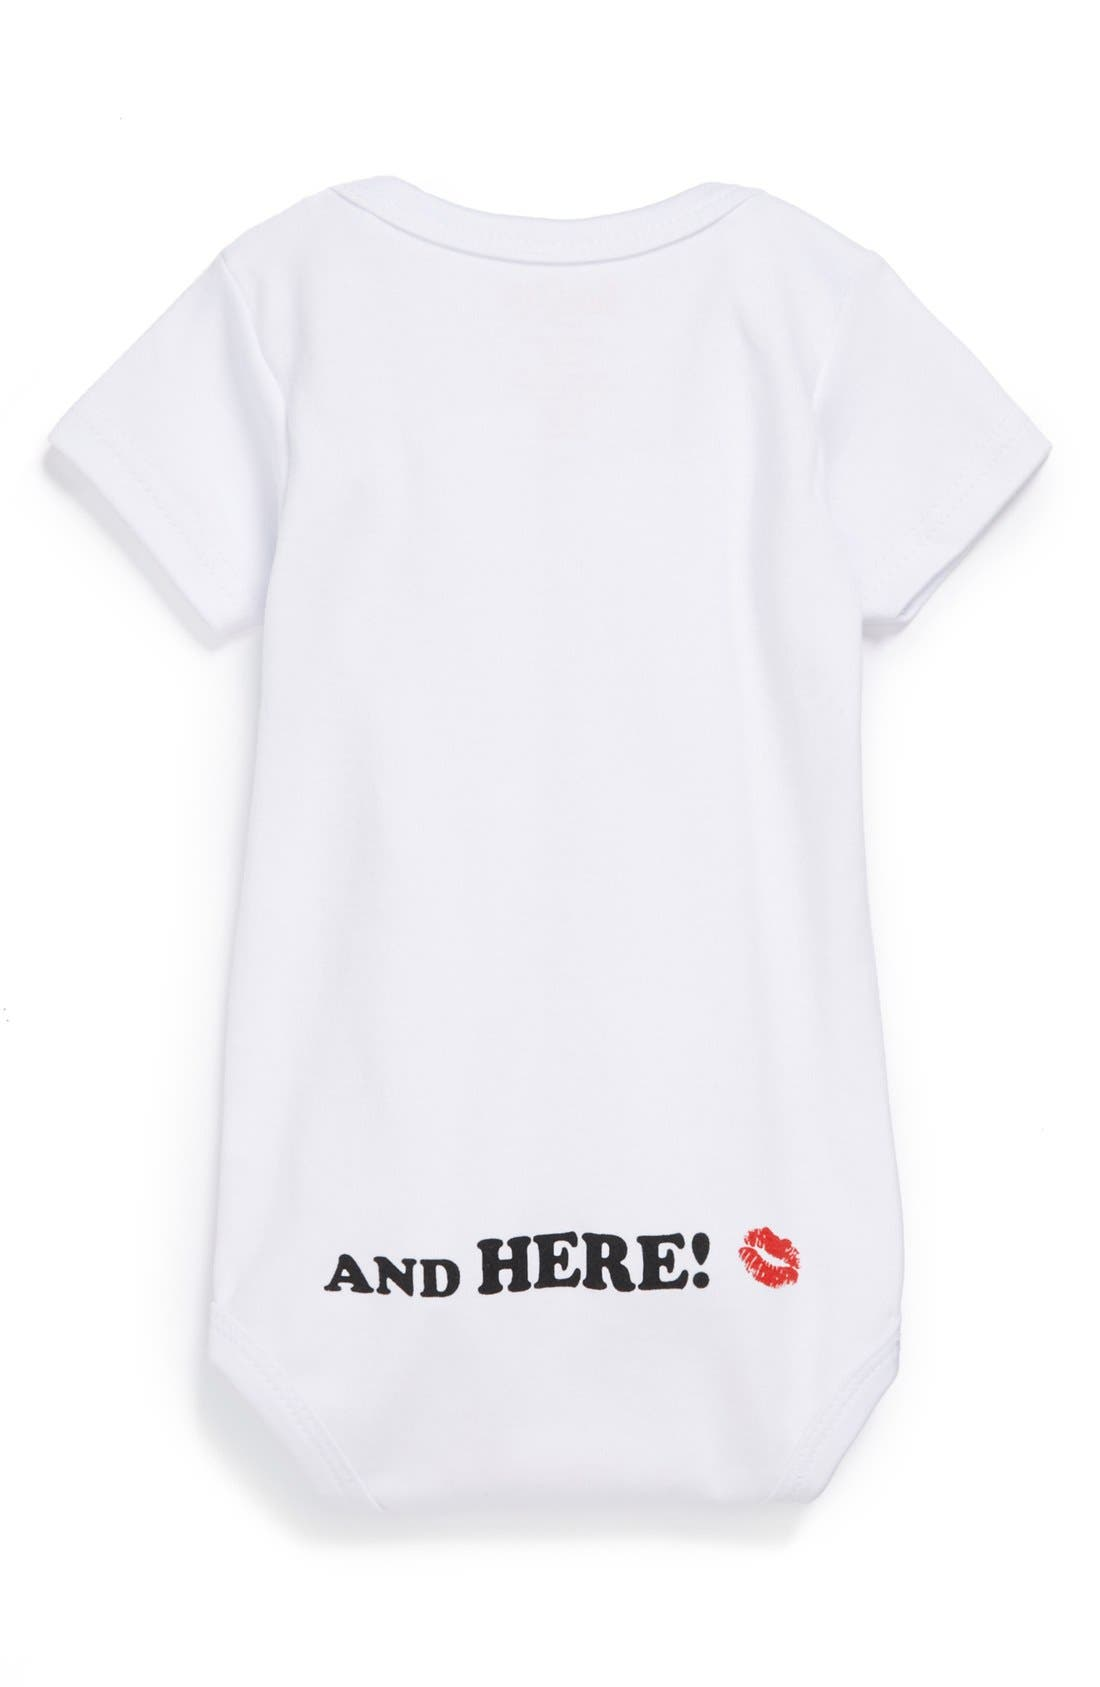 SARA KETY BABY & KIDS, 'Grandma Was Here' Bodysuit, Alternate thumbnail 2, color, WHITE